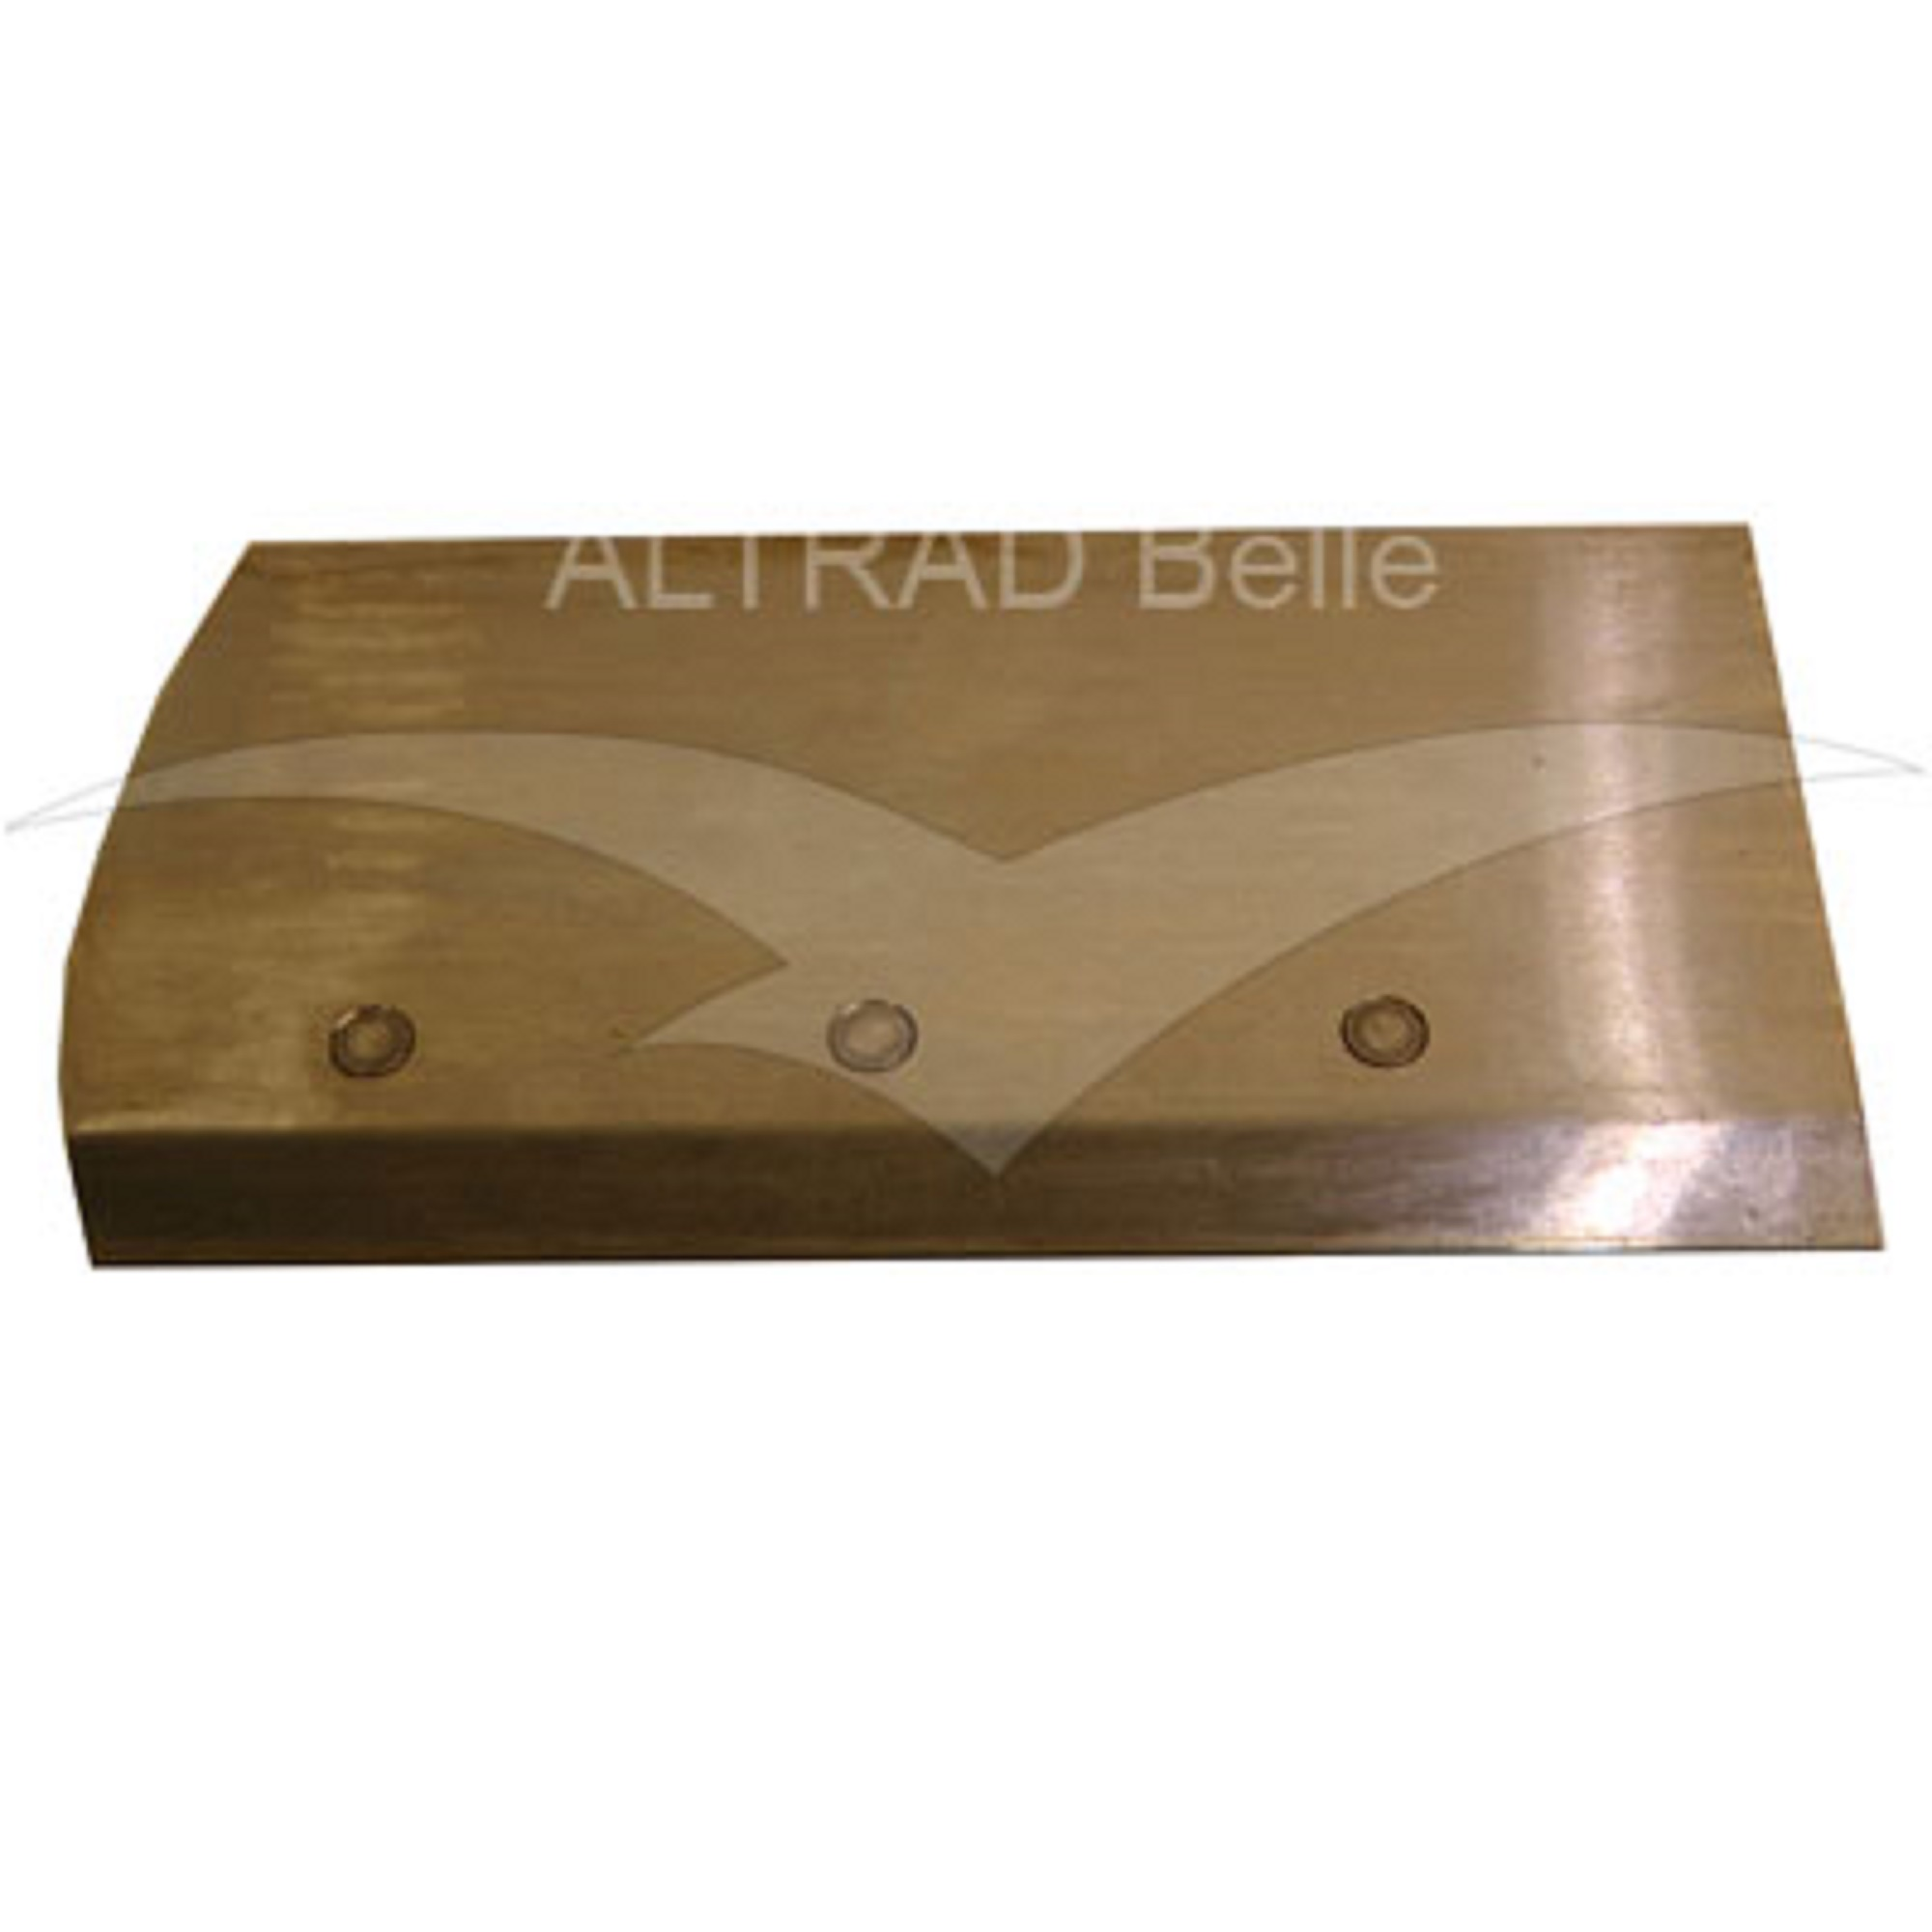 Bronze coloured metal finishing blade for the Belle PRO 600X trowel